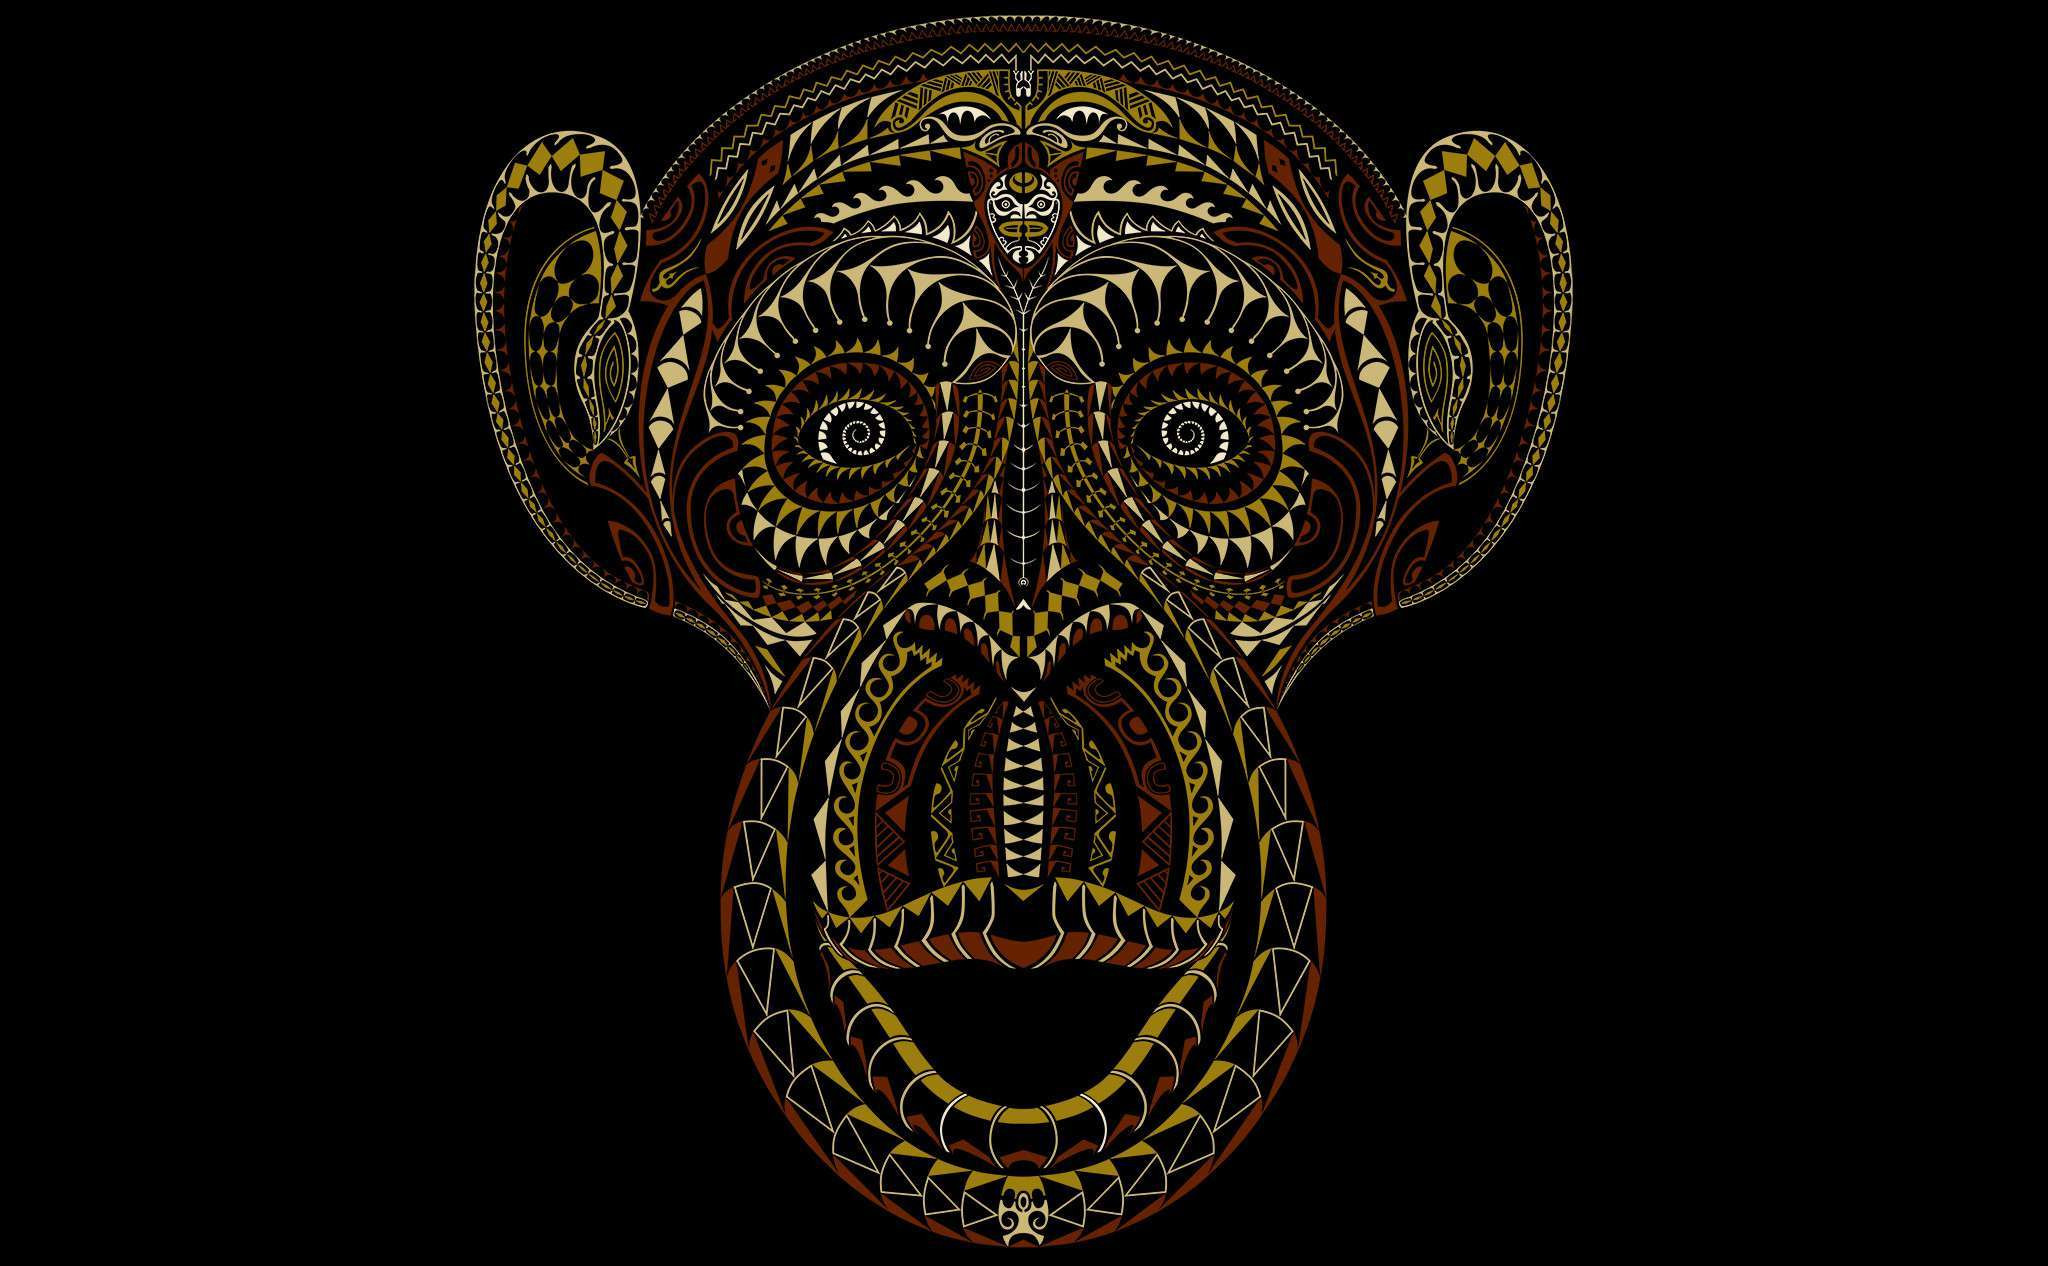 artwork-ta-moko-monkey_9223507d-1999-4834-8519-825defd60ecb